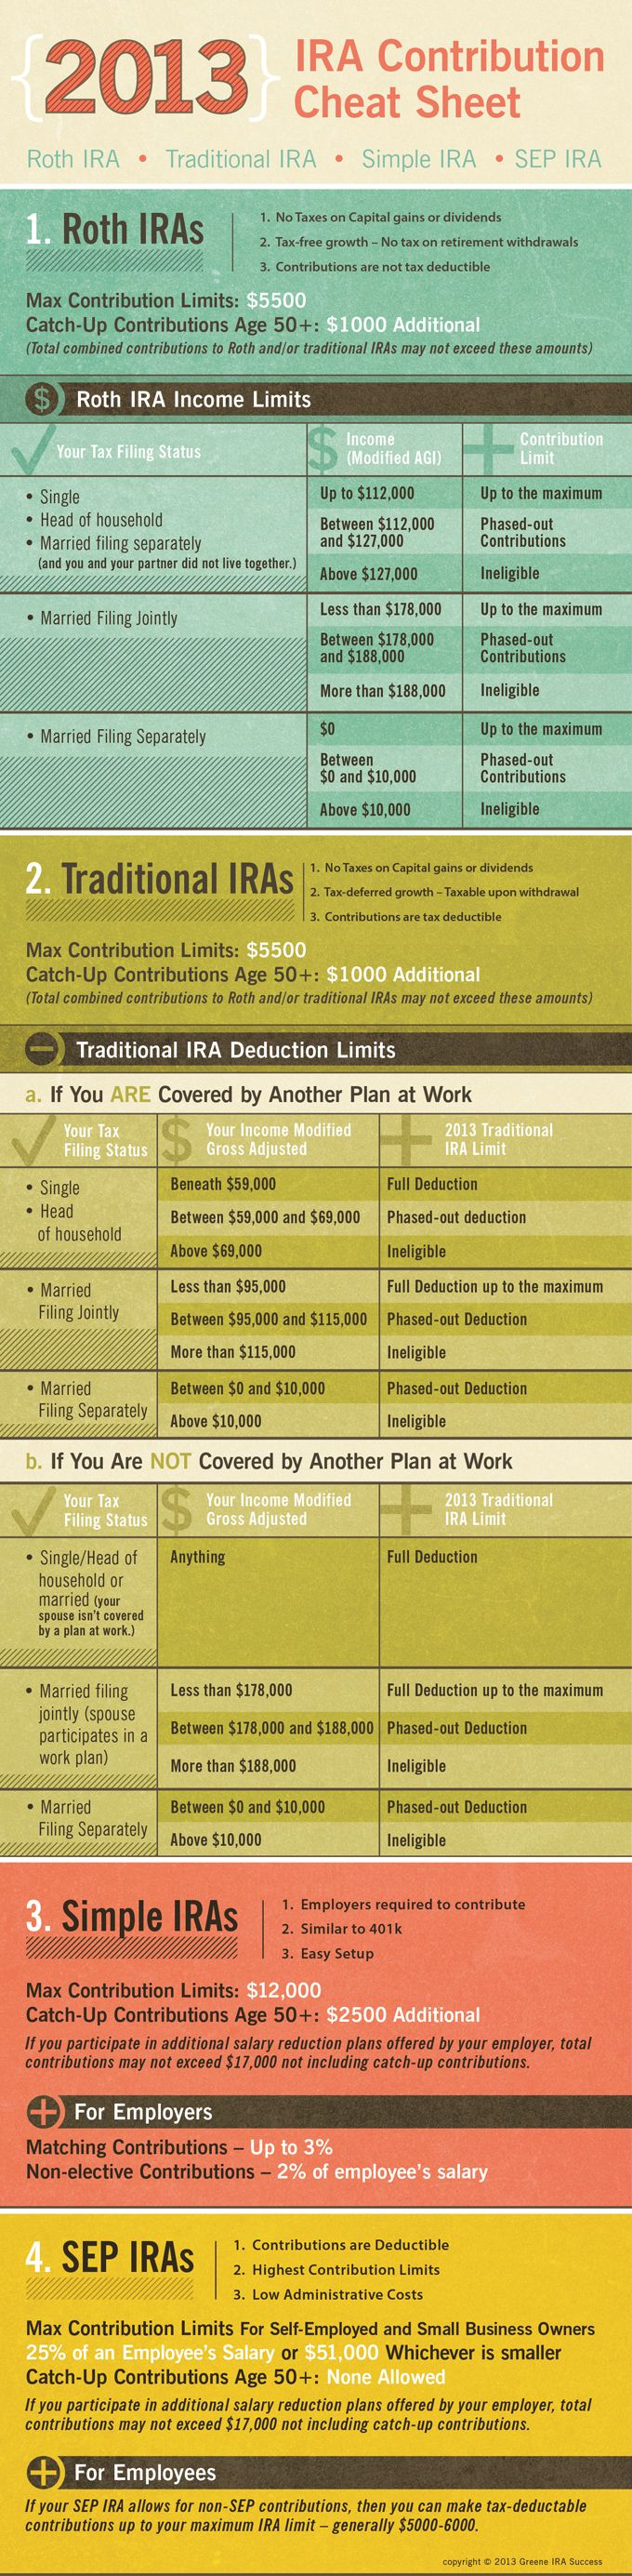 Ready for your 2013 IRA Contributions? Last year, the Internal Revenue Service made many changes that effect your maximum contribution limits for all types of retirement accounts, including Roth IRAs, Traditional retirement accounts, SEP accounts, and 2013 Simple IRAs. Stay up to date on all the rules and deadlines with this super handy and attractive [...]